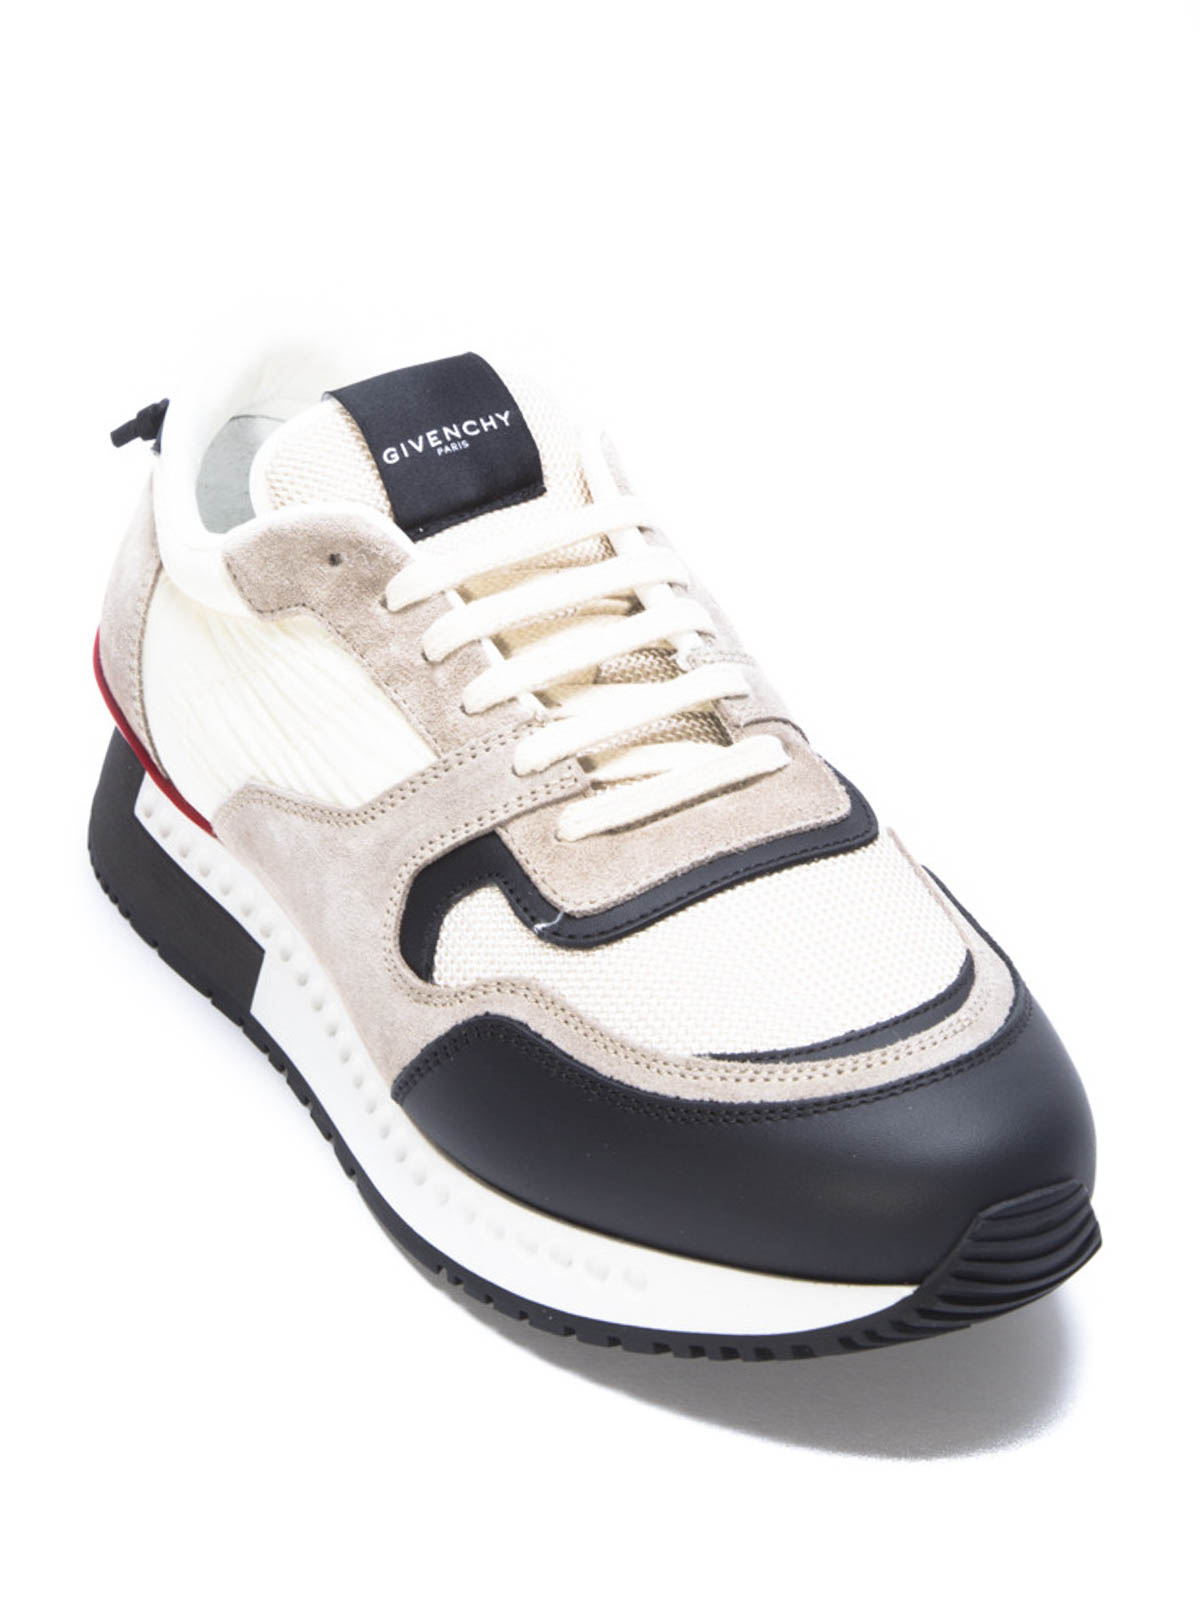 Sneakers with leather inserts